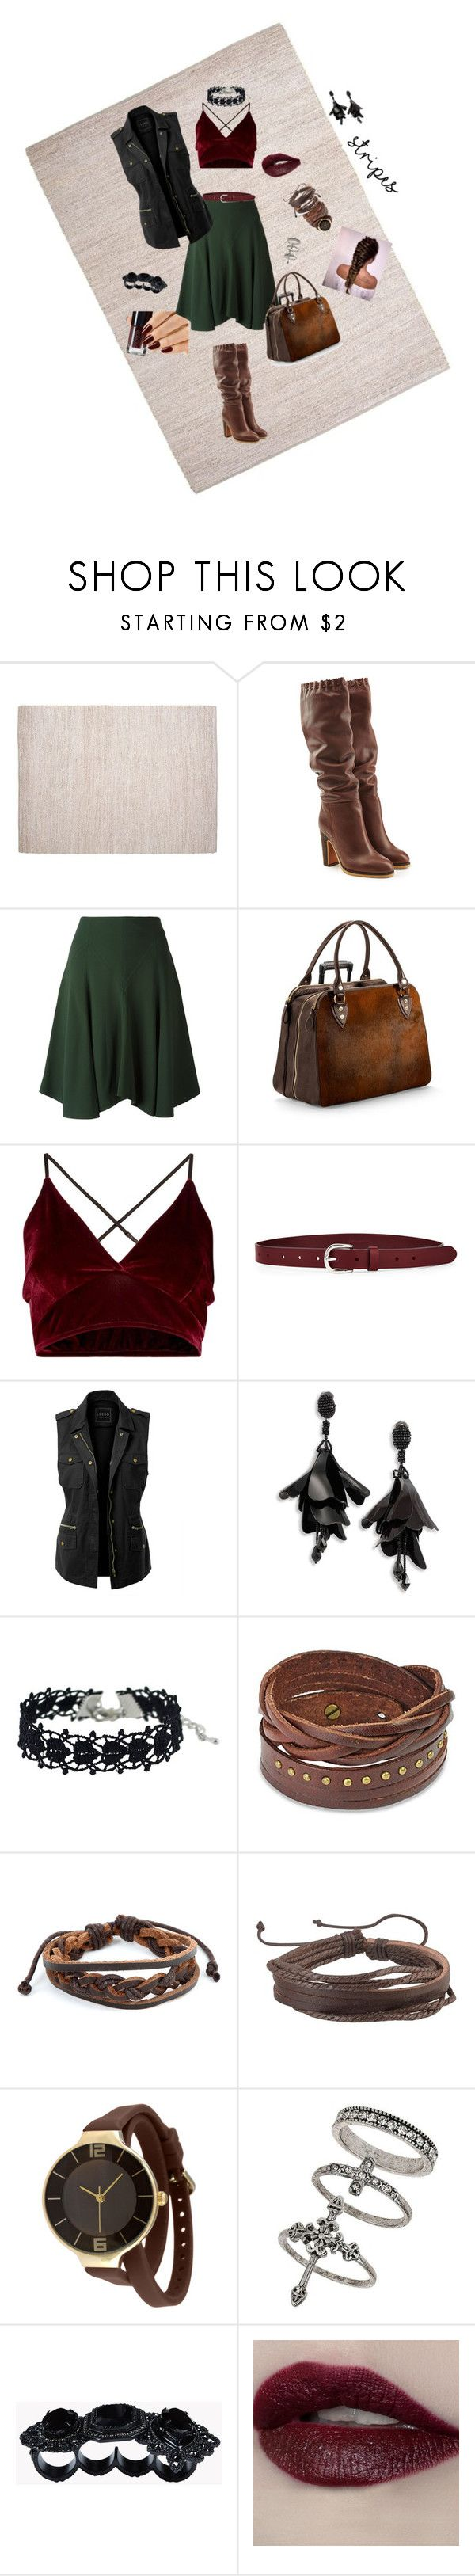 """""""Expansive🔥"""" by anastaslepchenko ❤ liked on Polyvore featuring Pottery Barn, See by Chloé, Chloé, Aspinal of London, Étoile Isabel Marant, LE3NO, Oscar de la Renta, West Coast Jewelry, Zodaca and TKO Orlogi"""